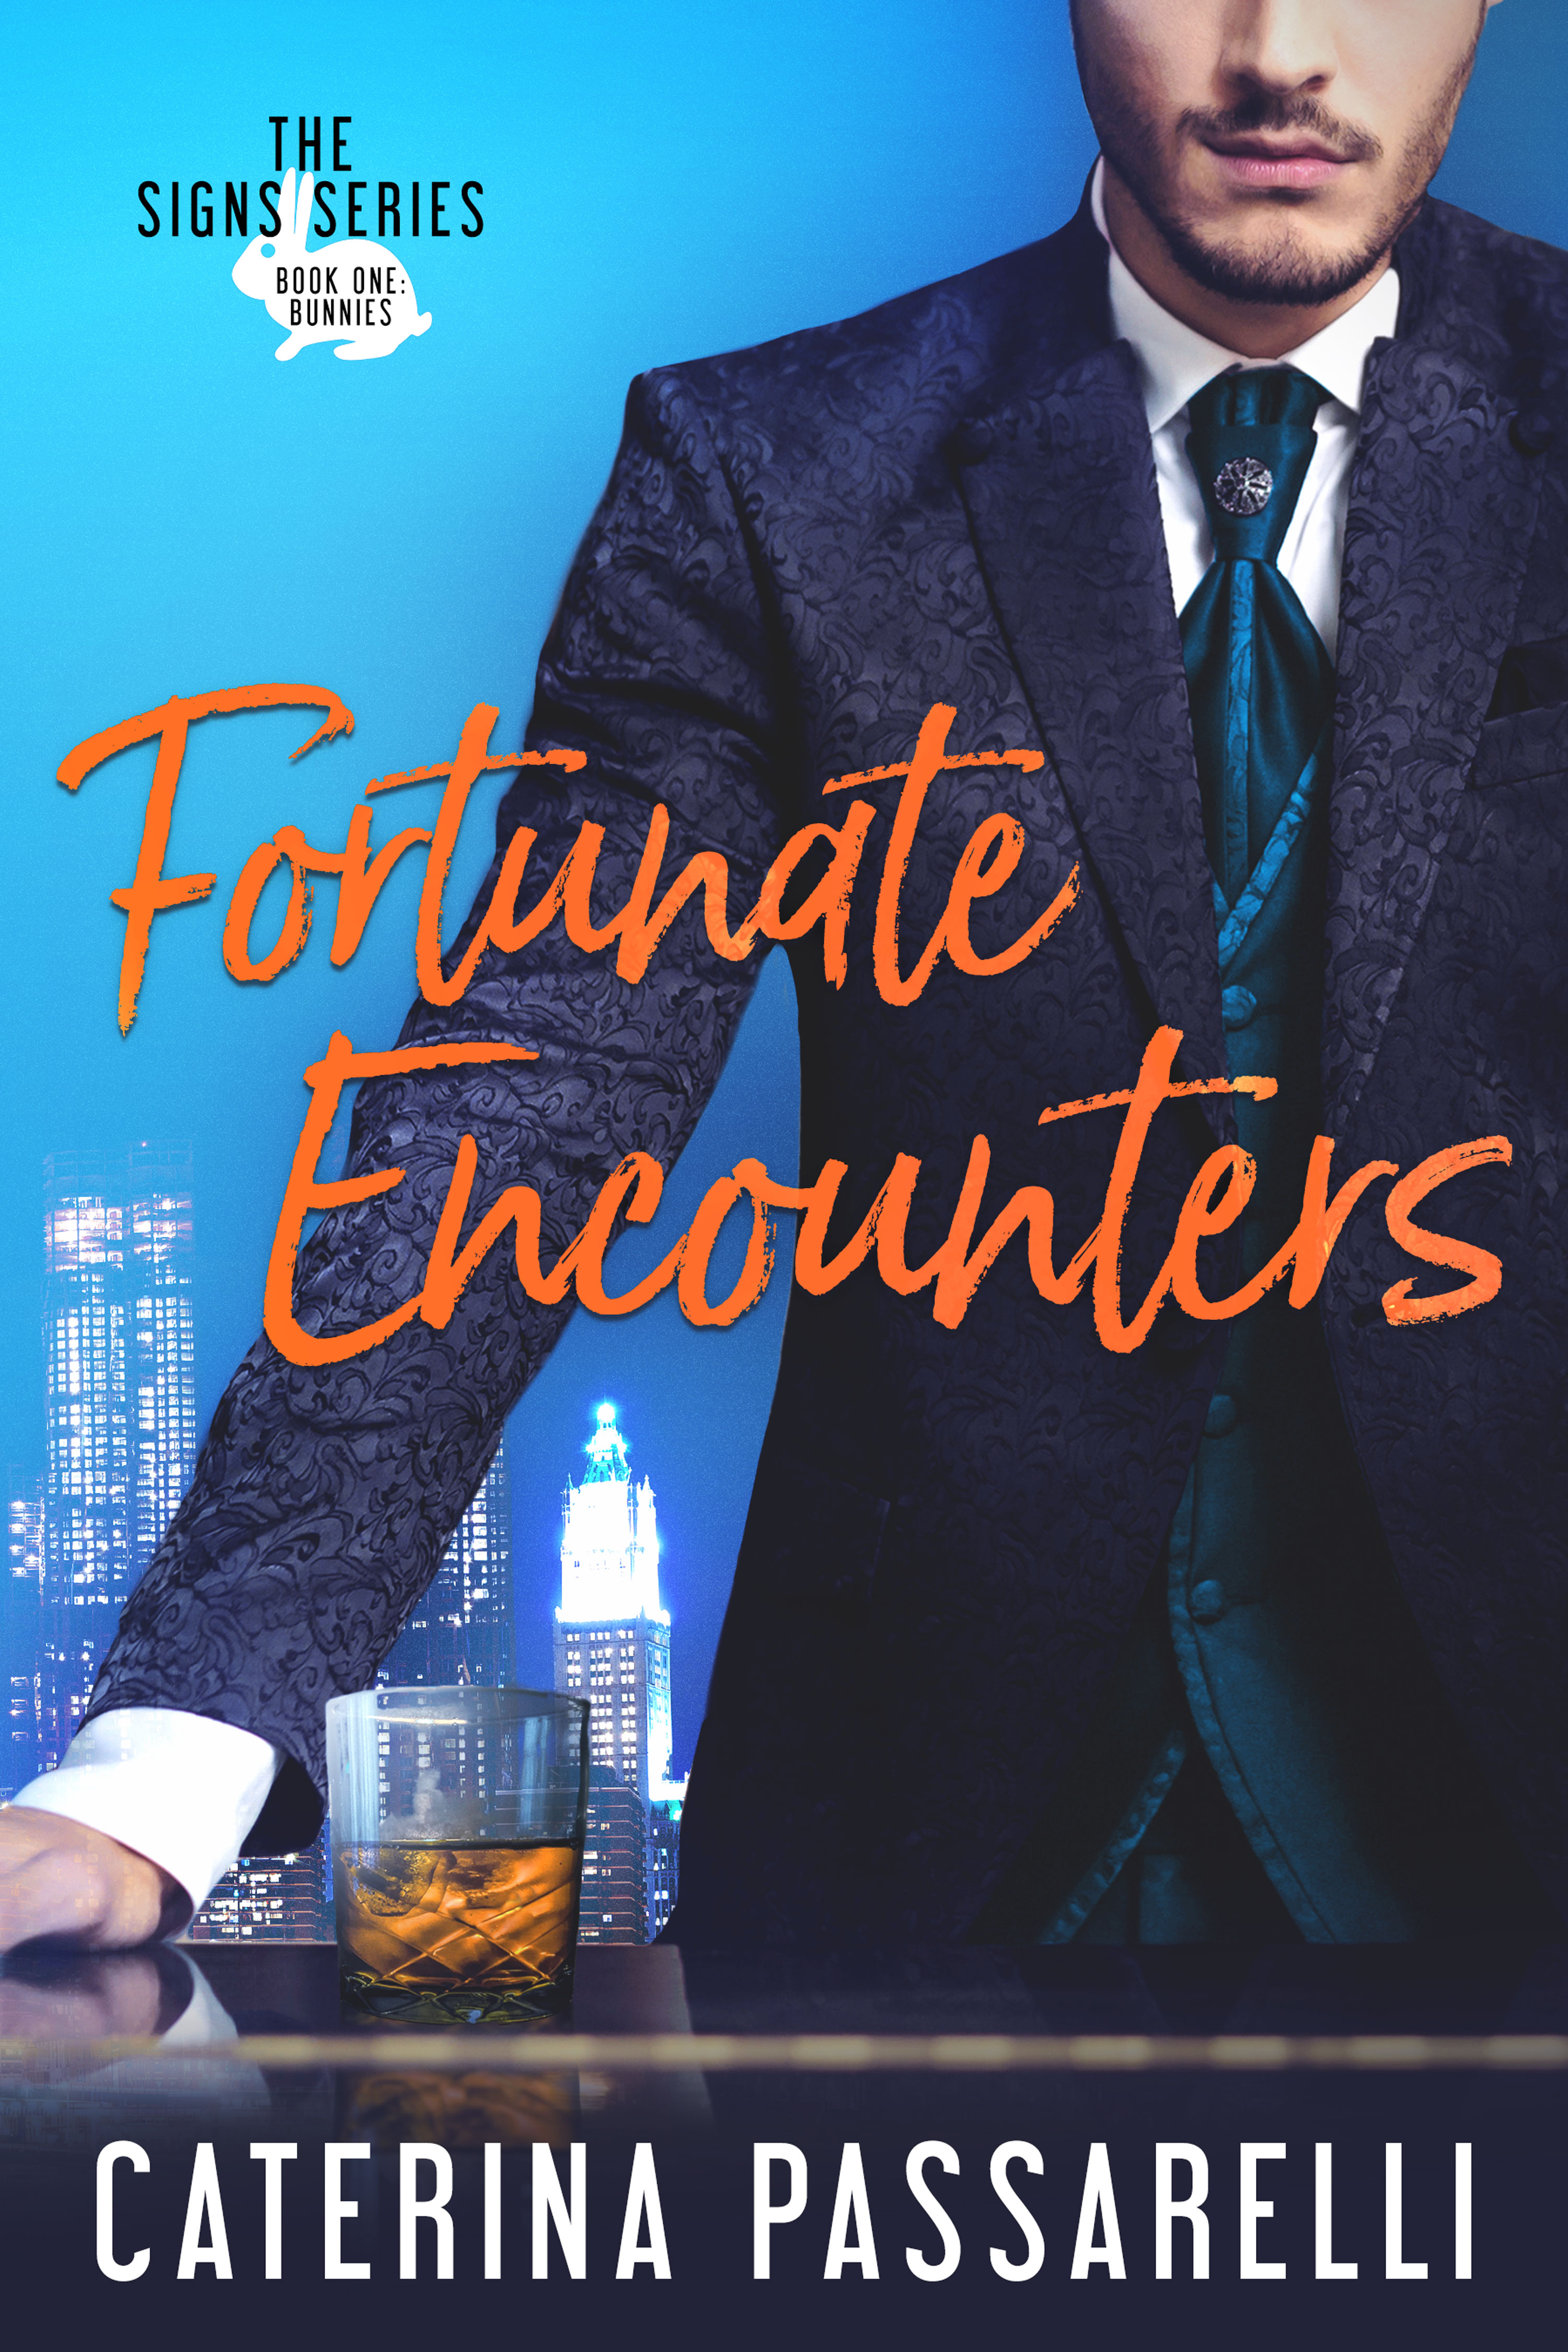 fortunate encounters cover reveal 1.jpg